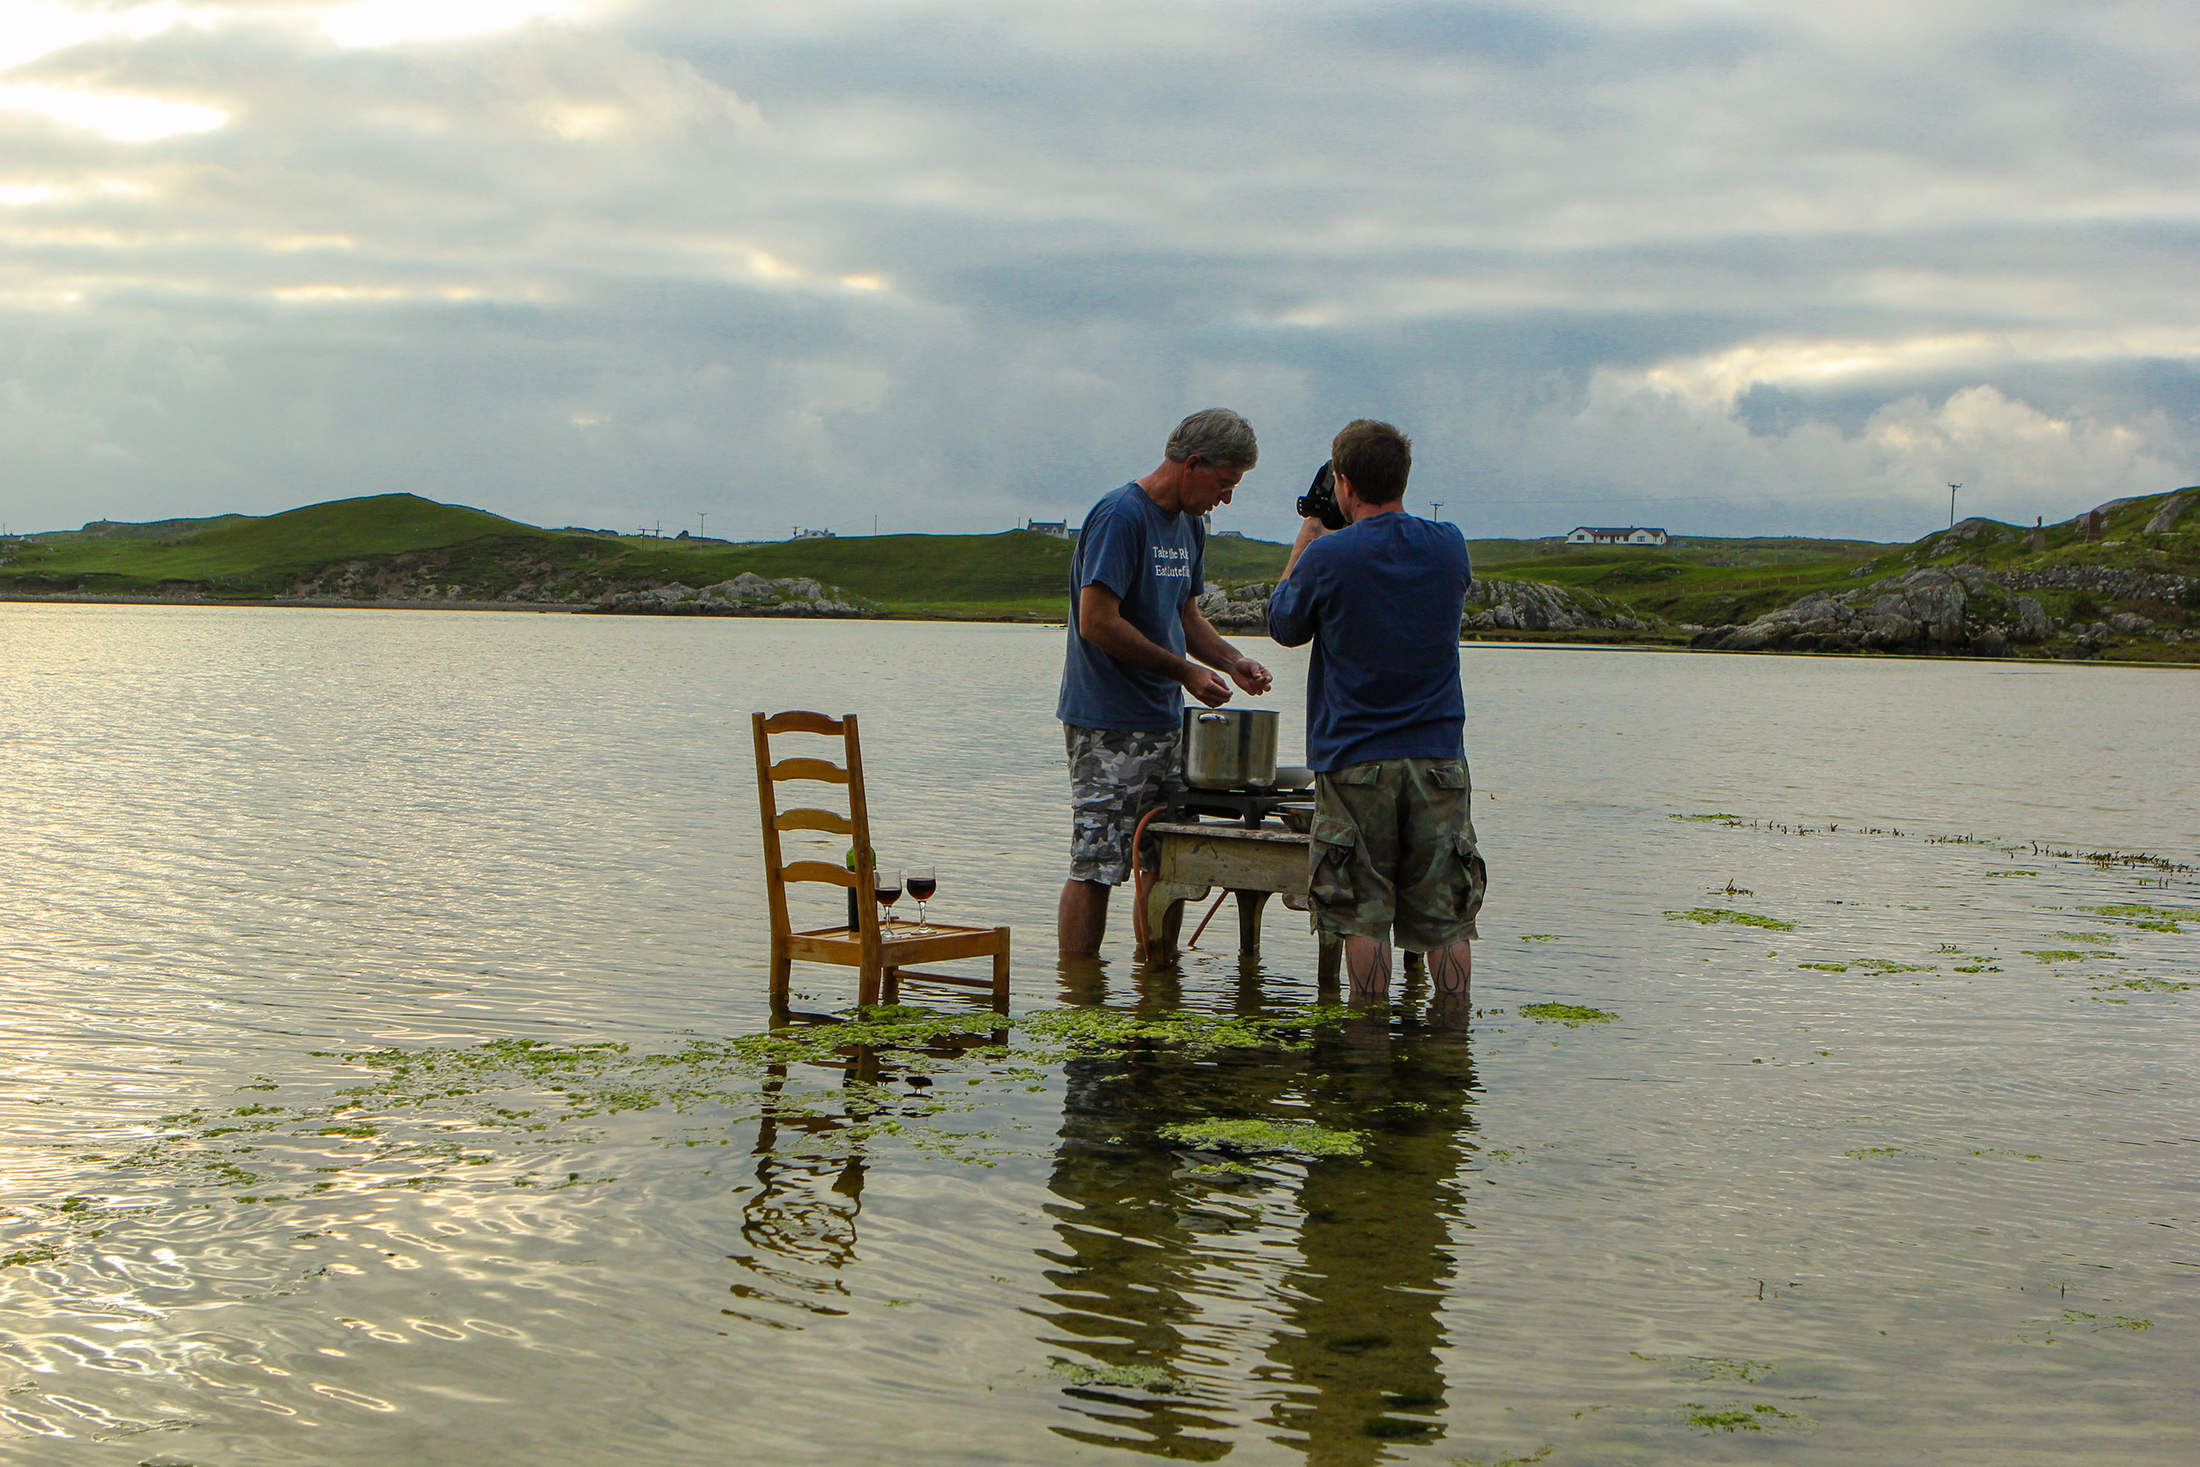 Food Over 50 host David Jackson and director Jonathan White shooting on location in Scotland